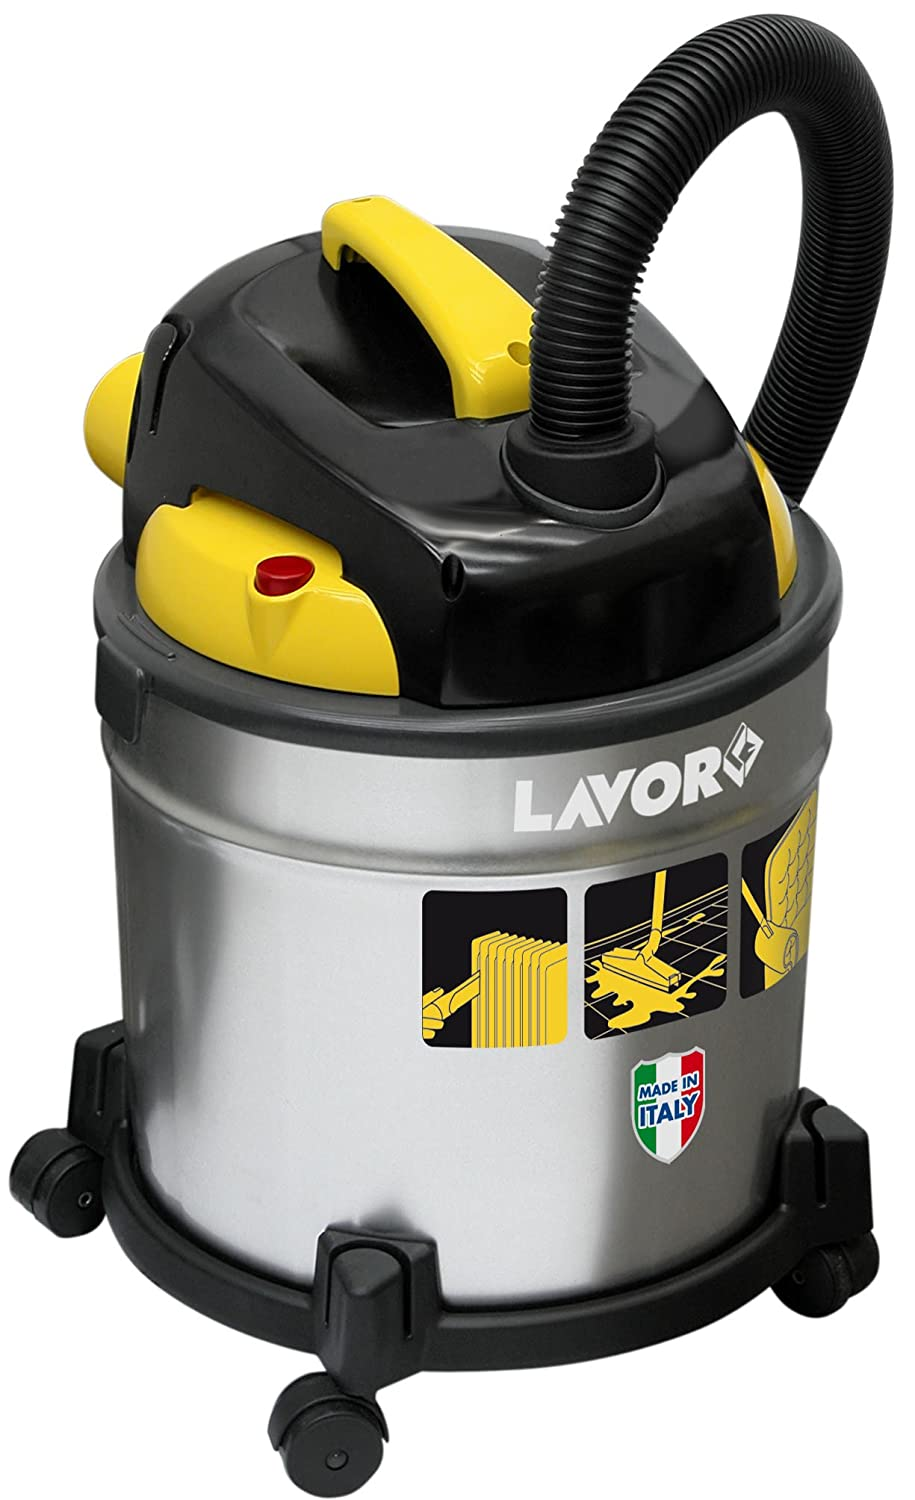 Lavorwash 8.243.0002 Vacuum cleaner vacuum cleaner